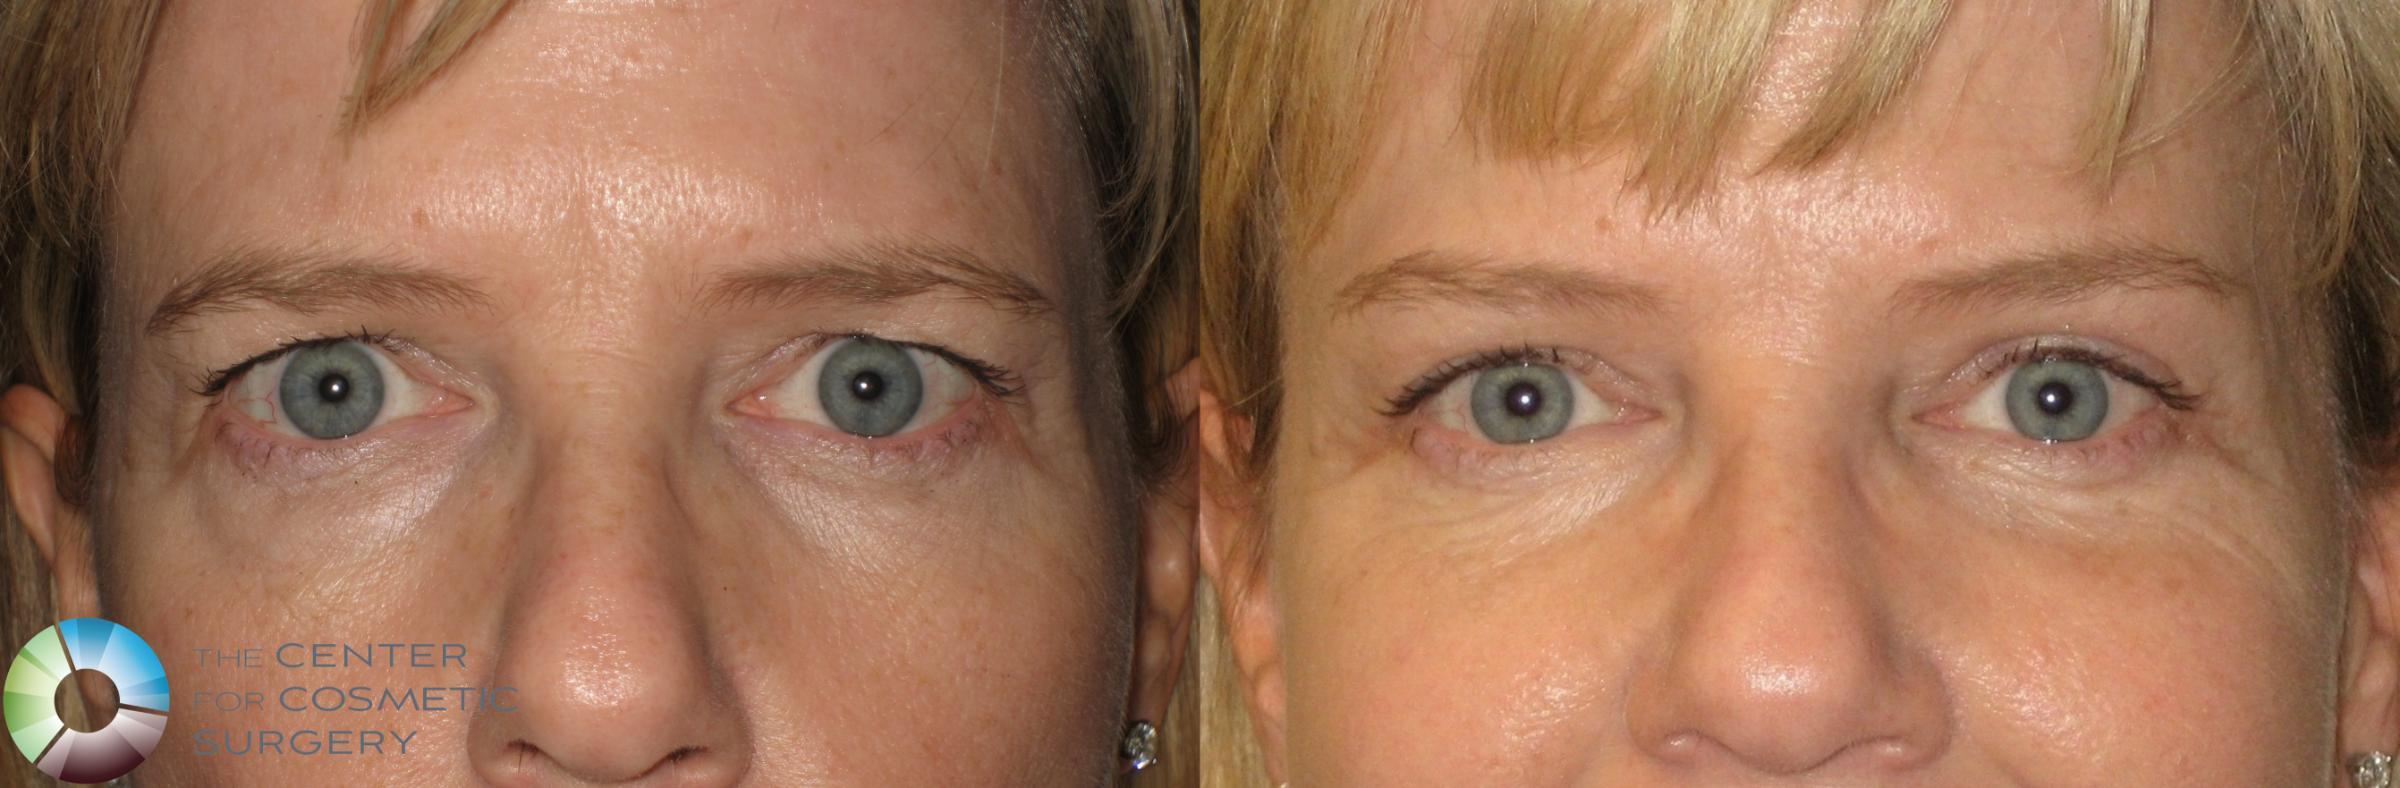 Mini Brow Lift Case 154 Before & After View #1 | Golden, CO | The Center for Cosmetic Surgery